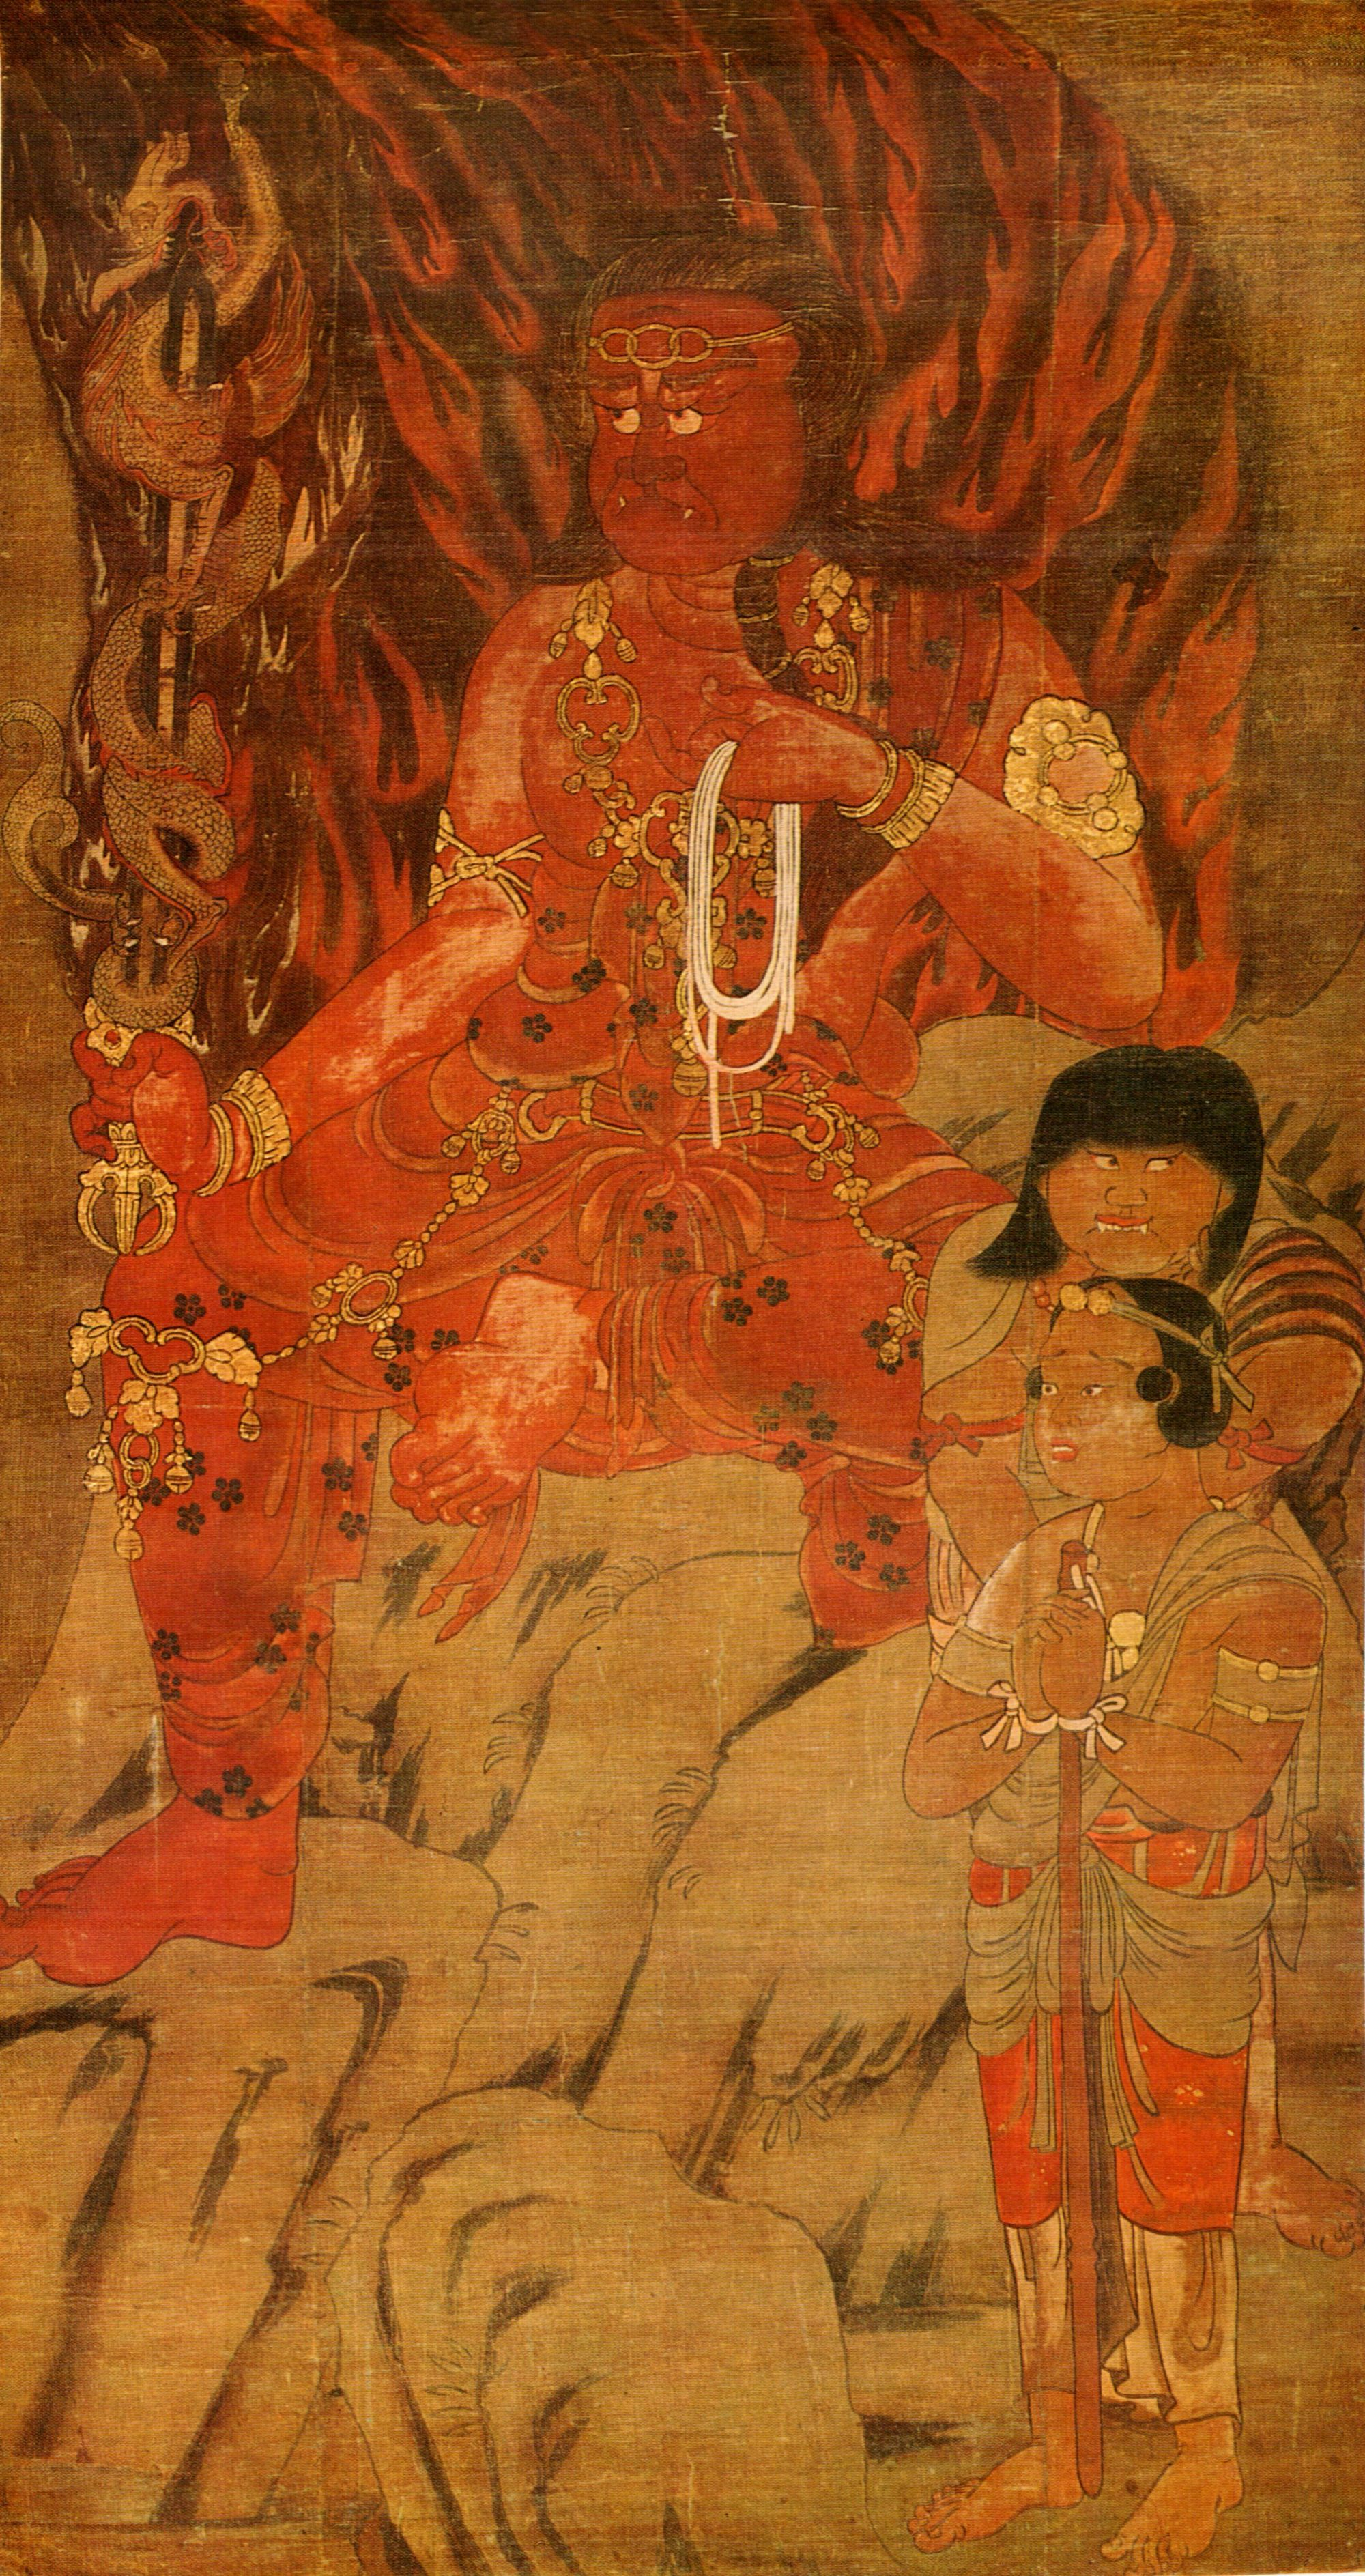 Fudō Myōō Acala Vidyaraja Is A Powerful Deity Who Protects All Living Beings By Burning All Impediments アートのアイデア 仏教芸術 仏教